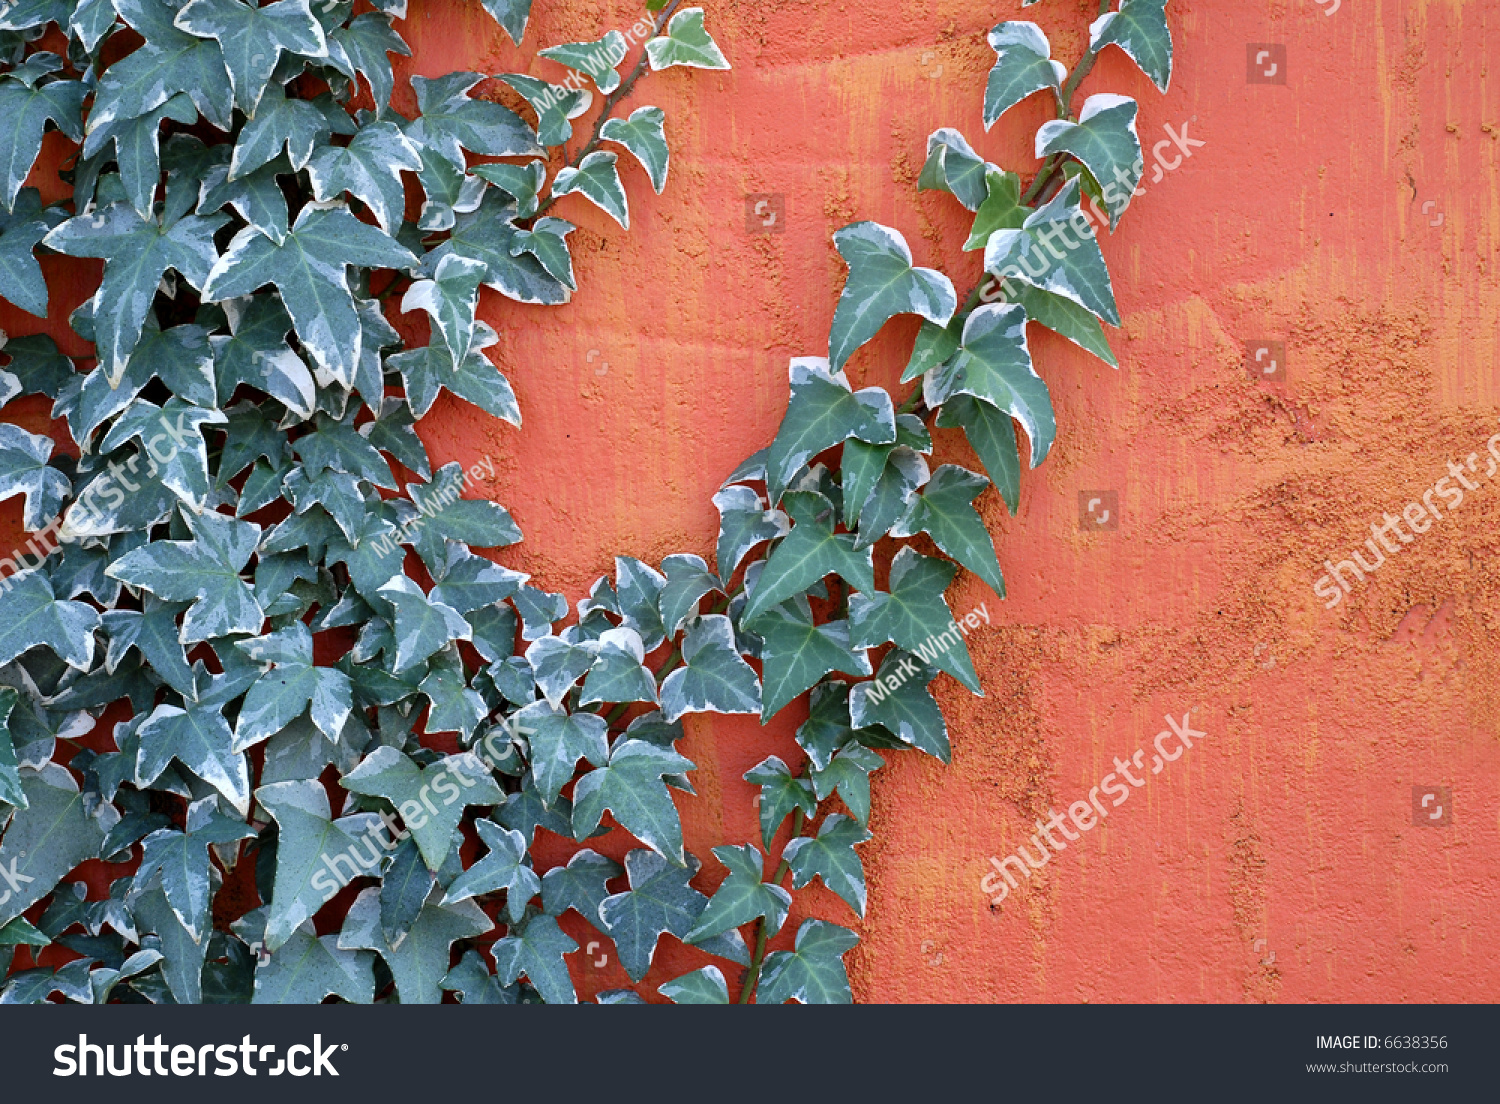 Ivy climbing on a textured bright colored wall